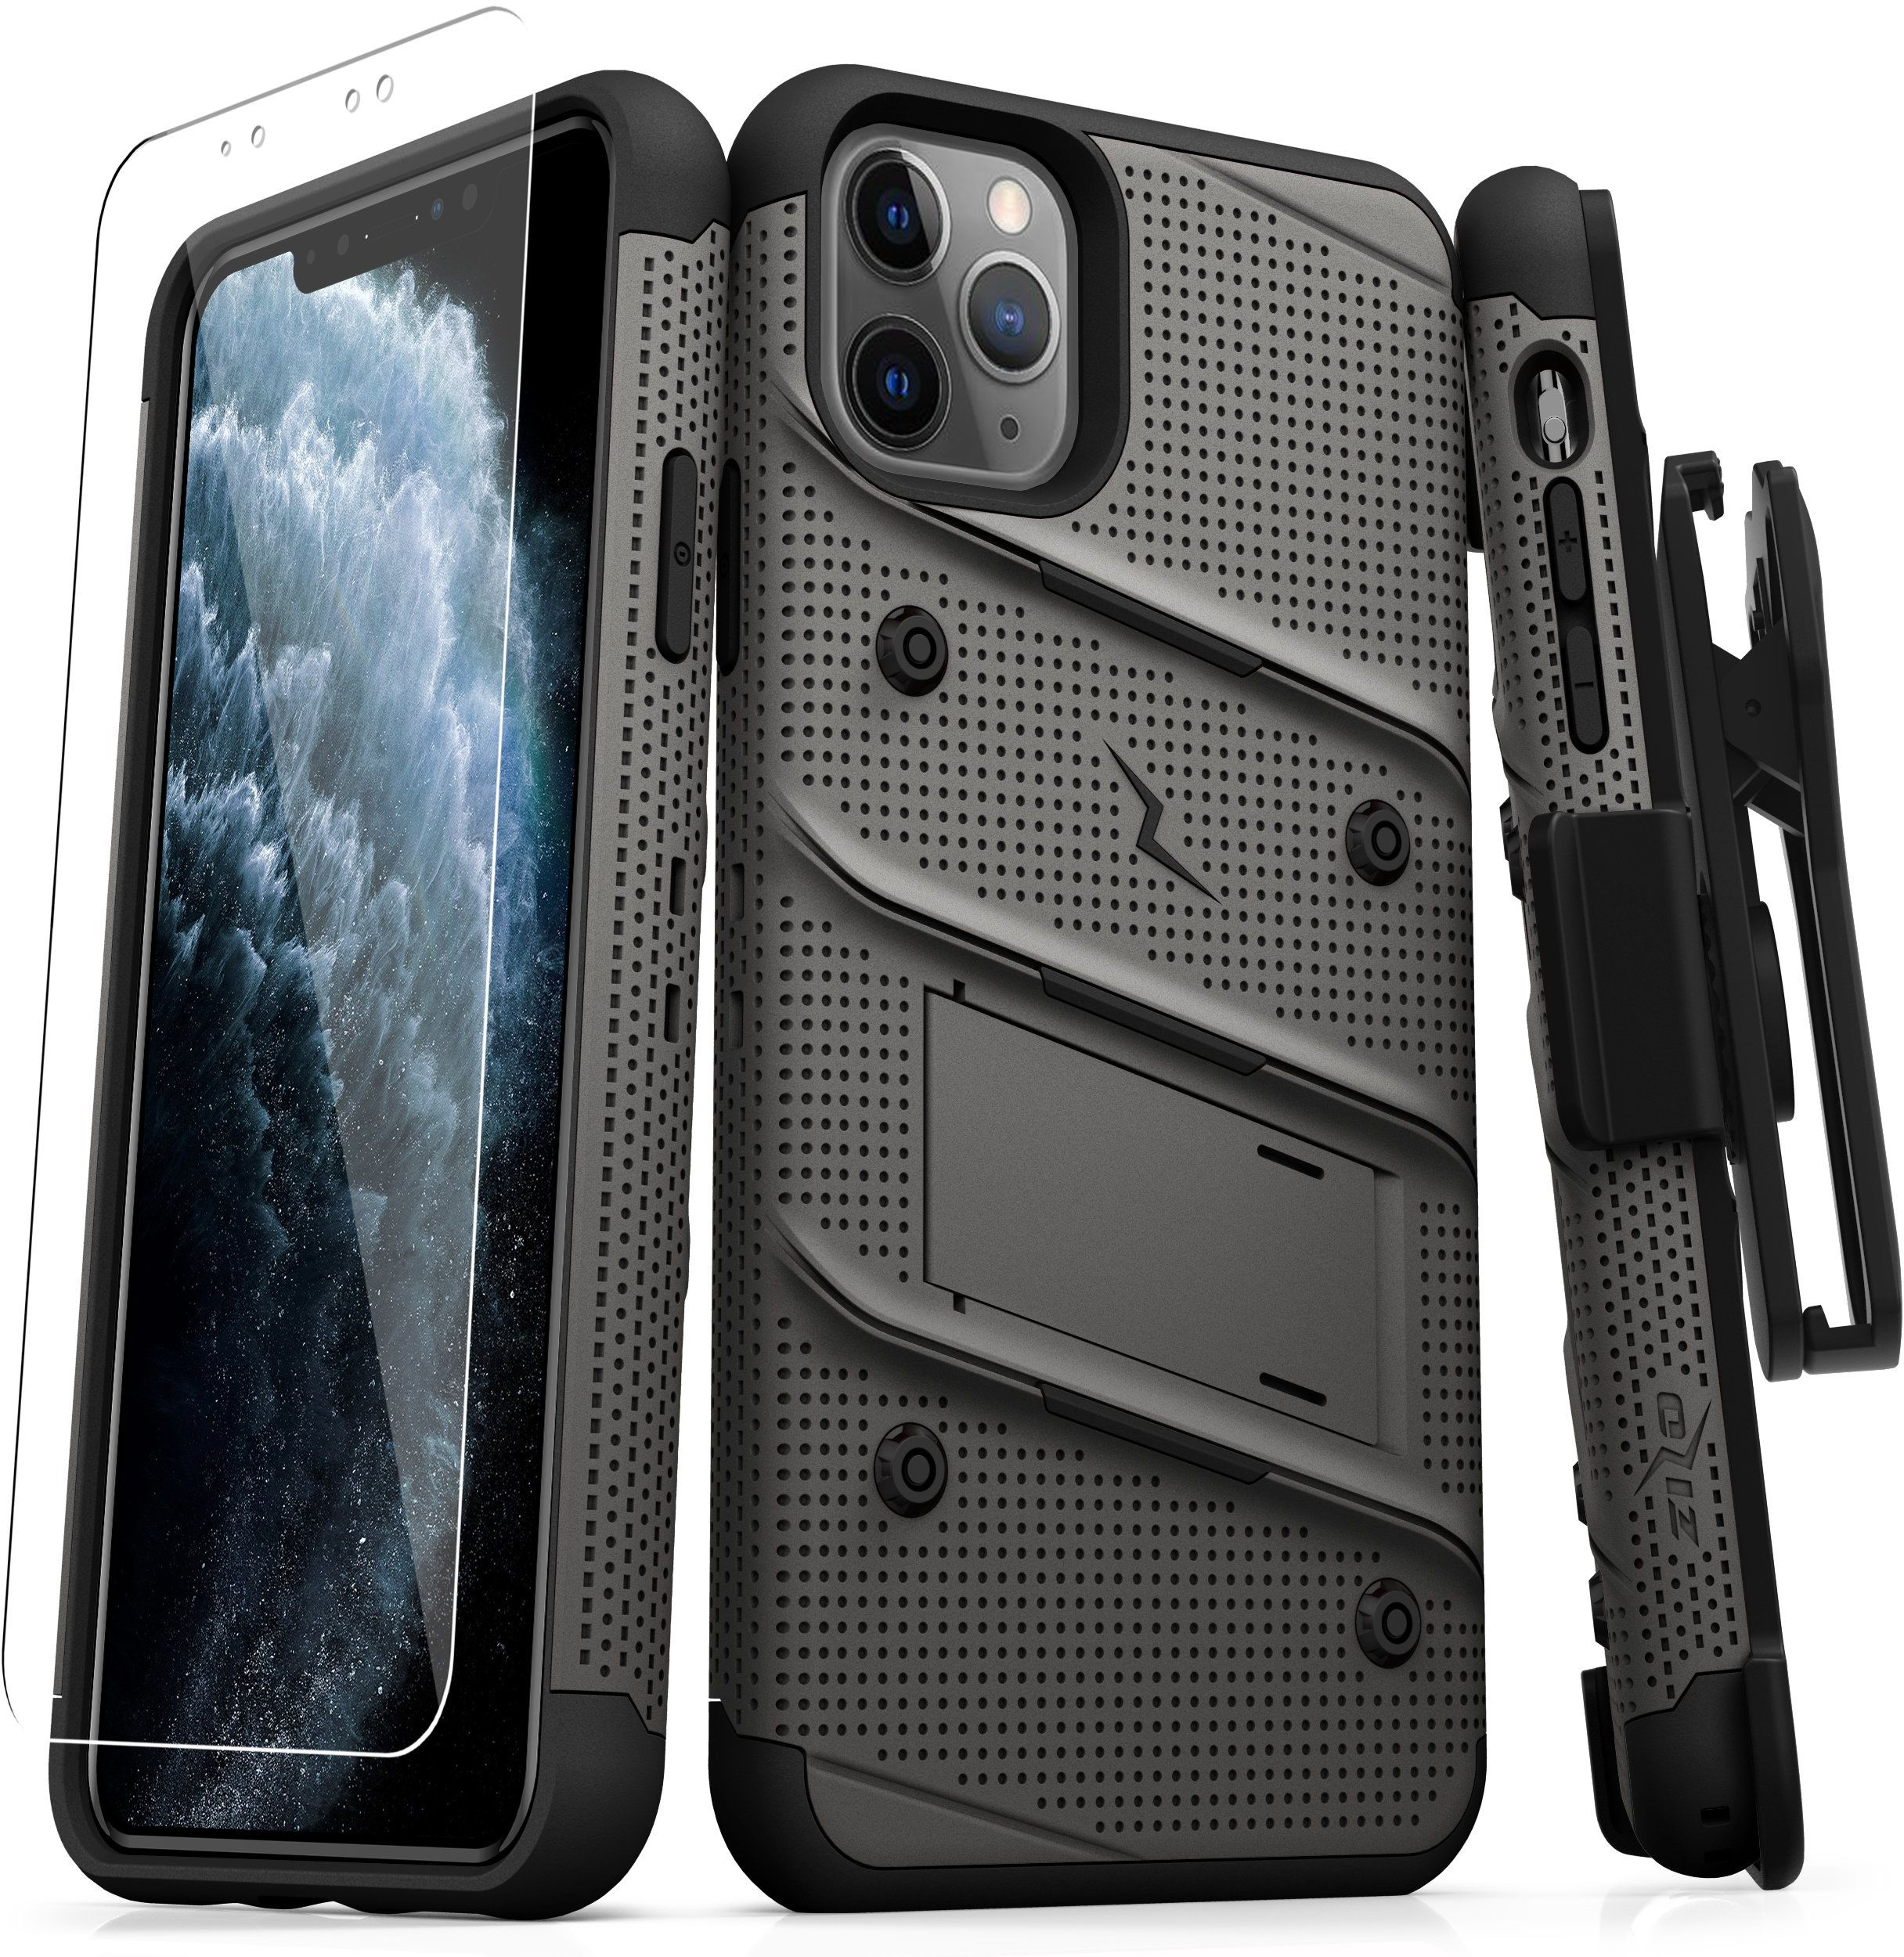 Zizo Bolt Cover Etui Pancerne do iPhone 11 Pro ze Szkłem 9H na Ekran + Podstawka & Uchwyt do Paska (Gun Metal Gray & Black)